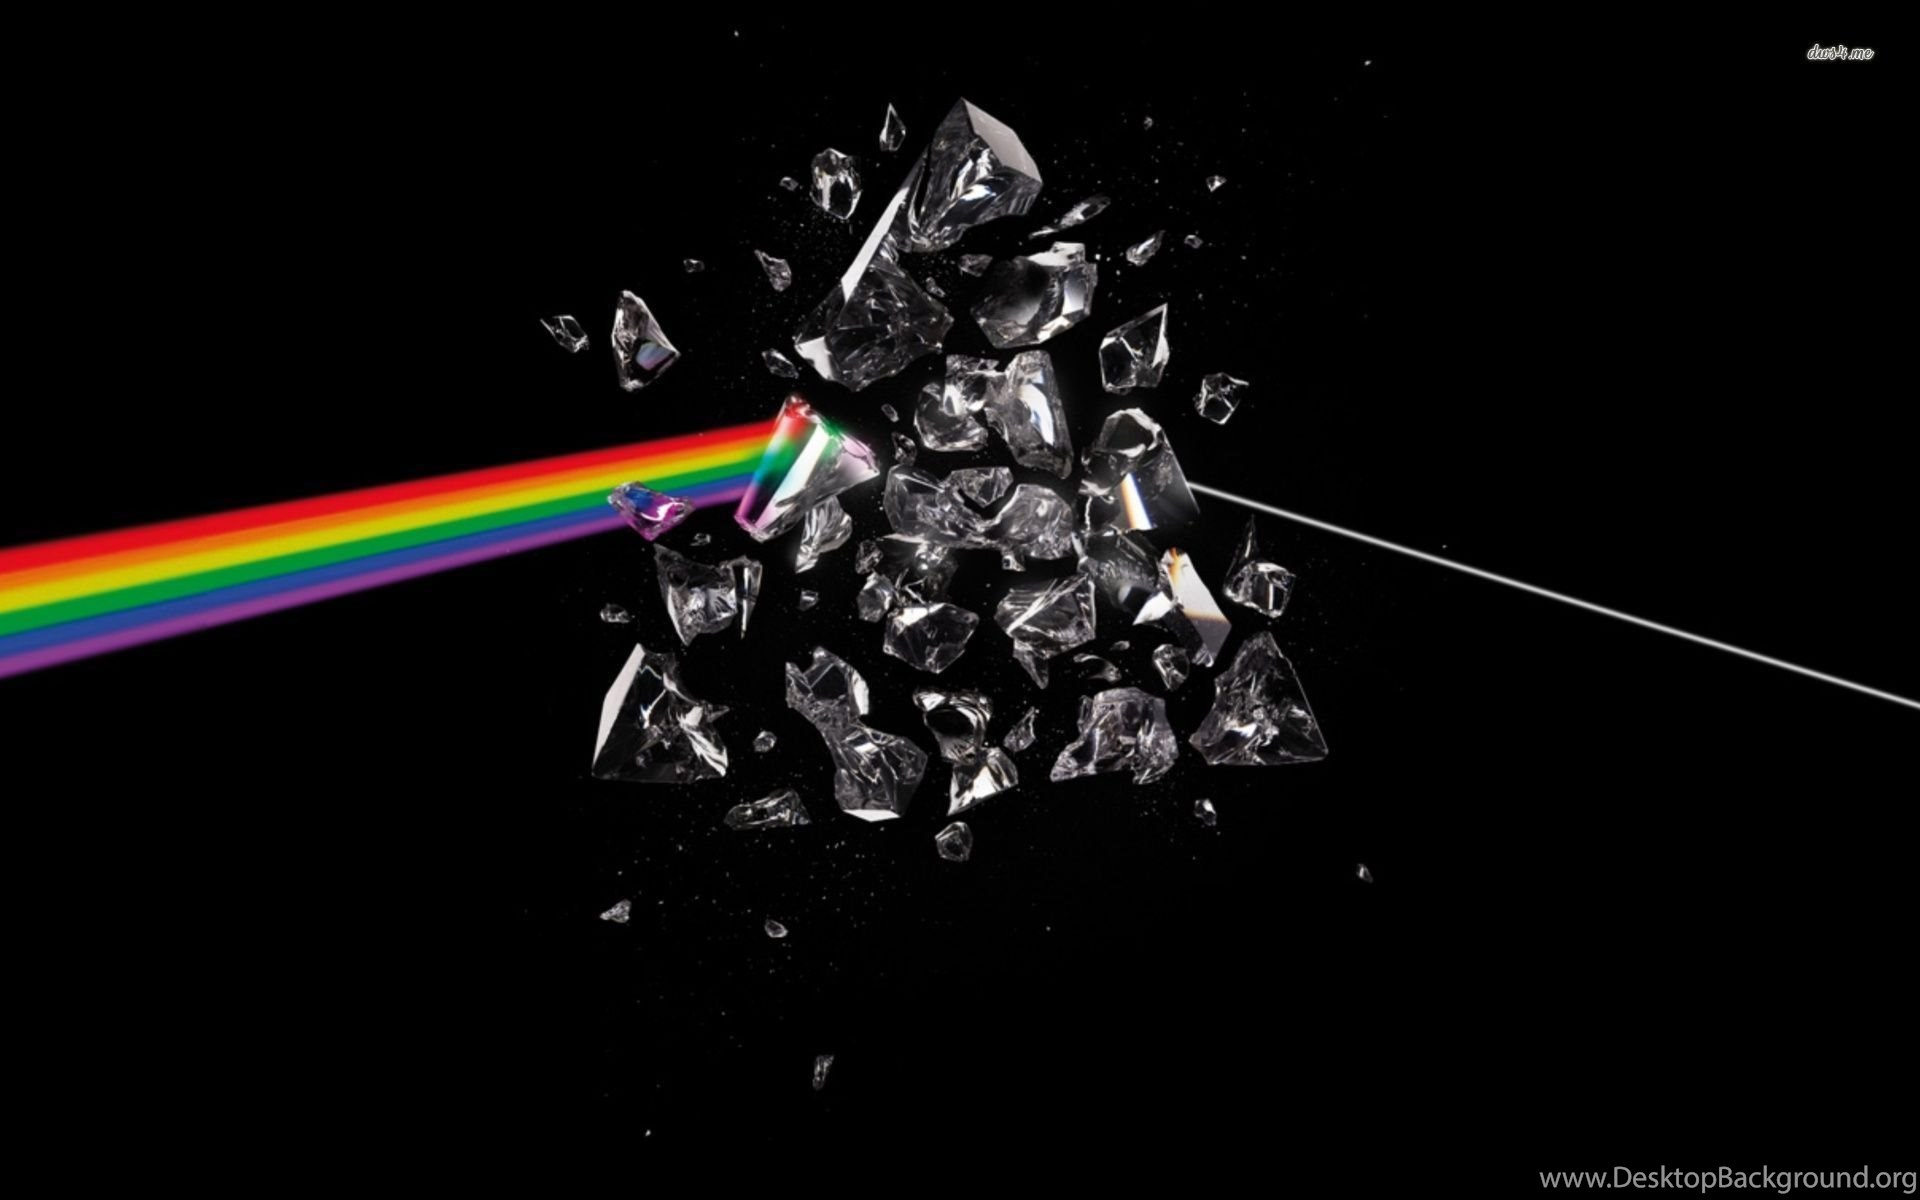 Pink Floyd Wallpapers Hd And Images For Pc Desktop Background